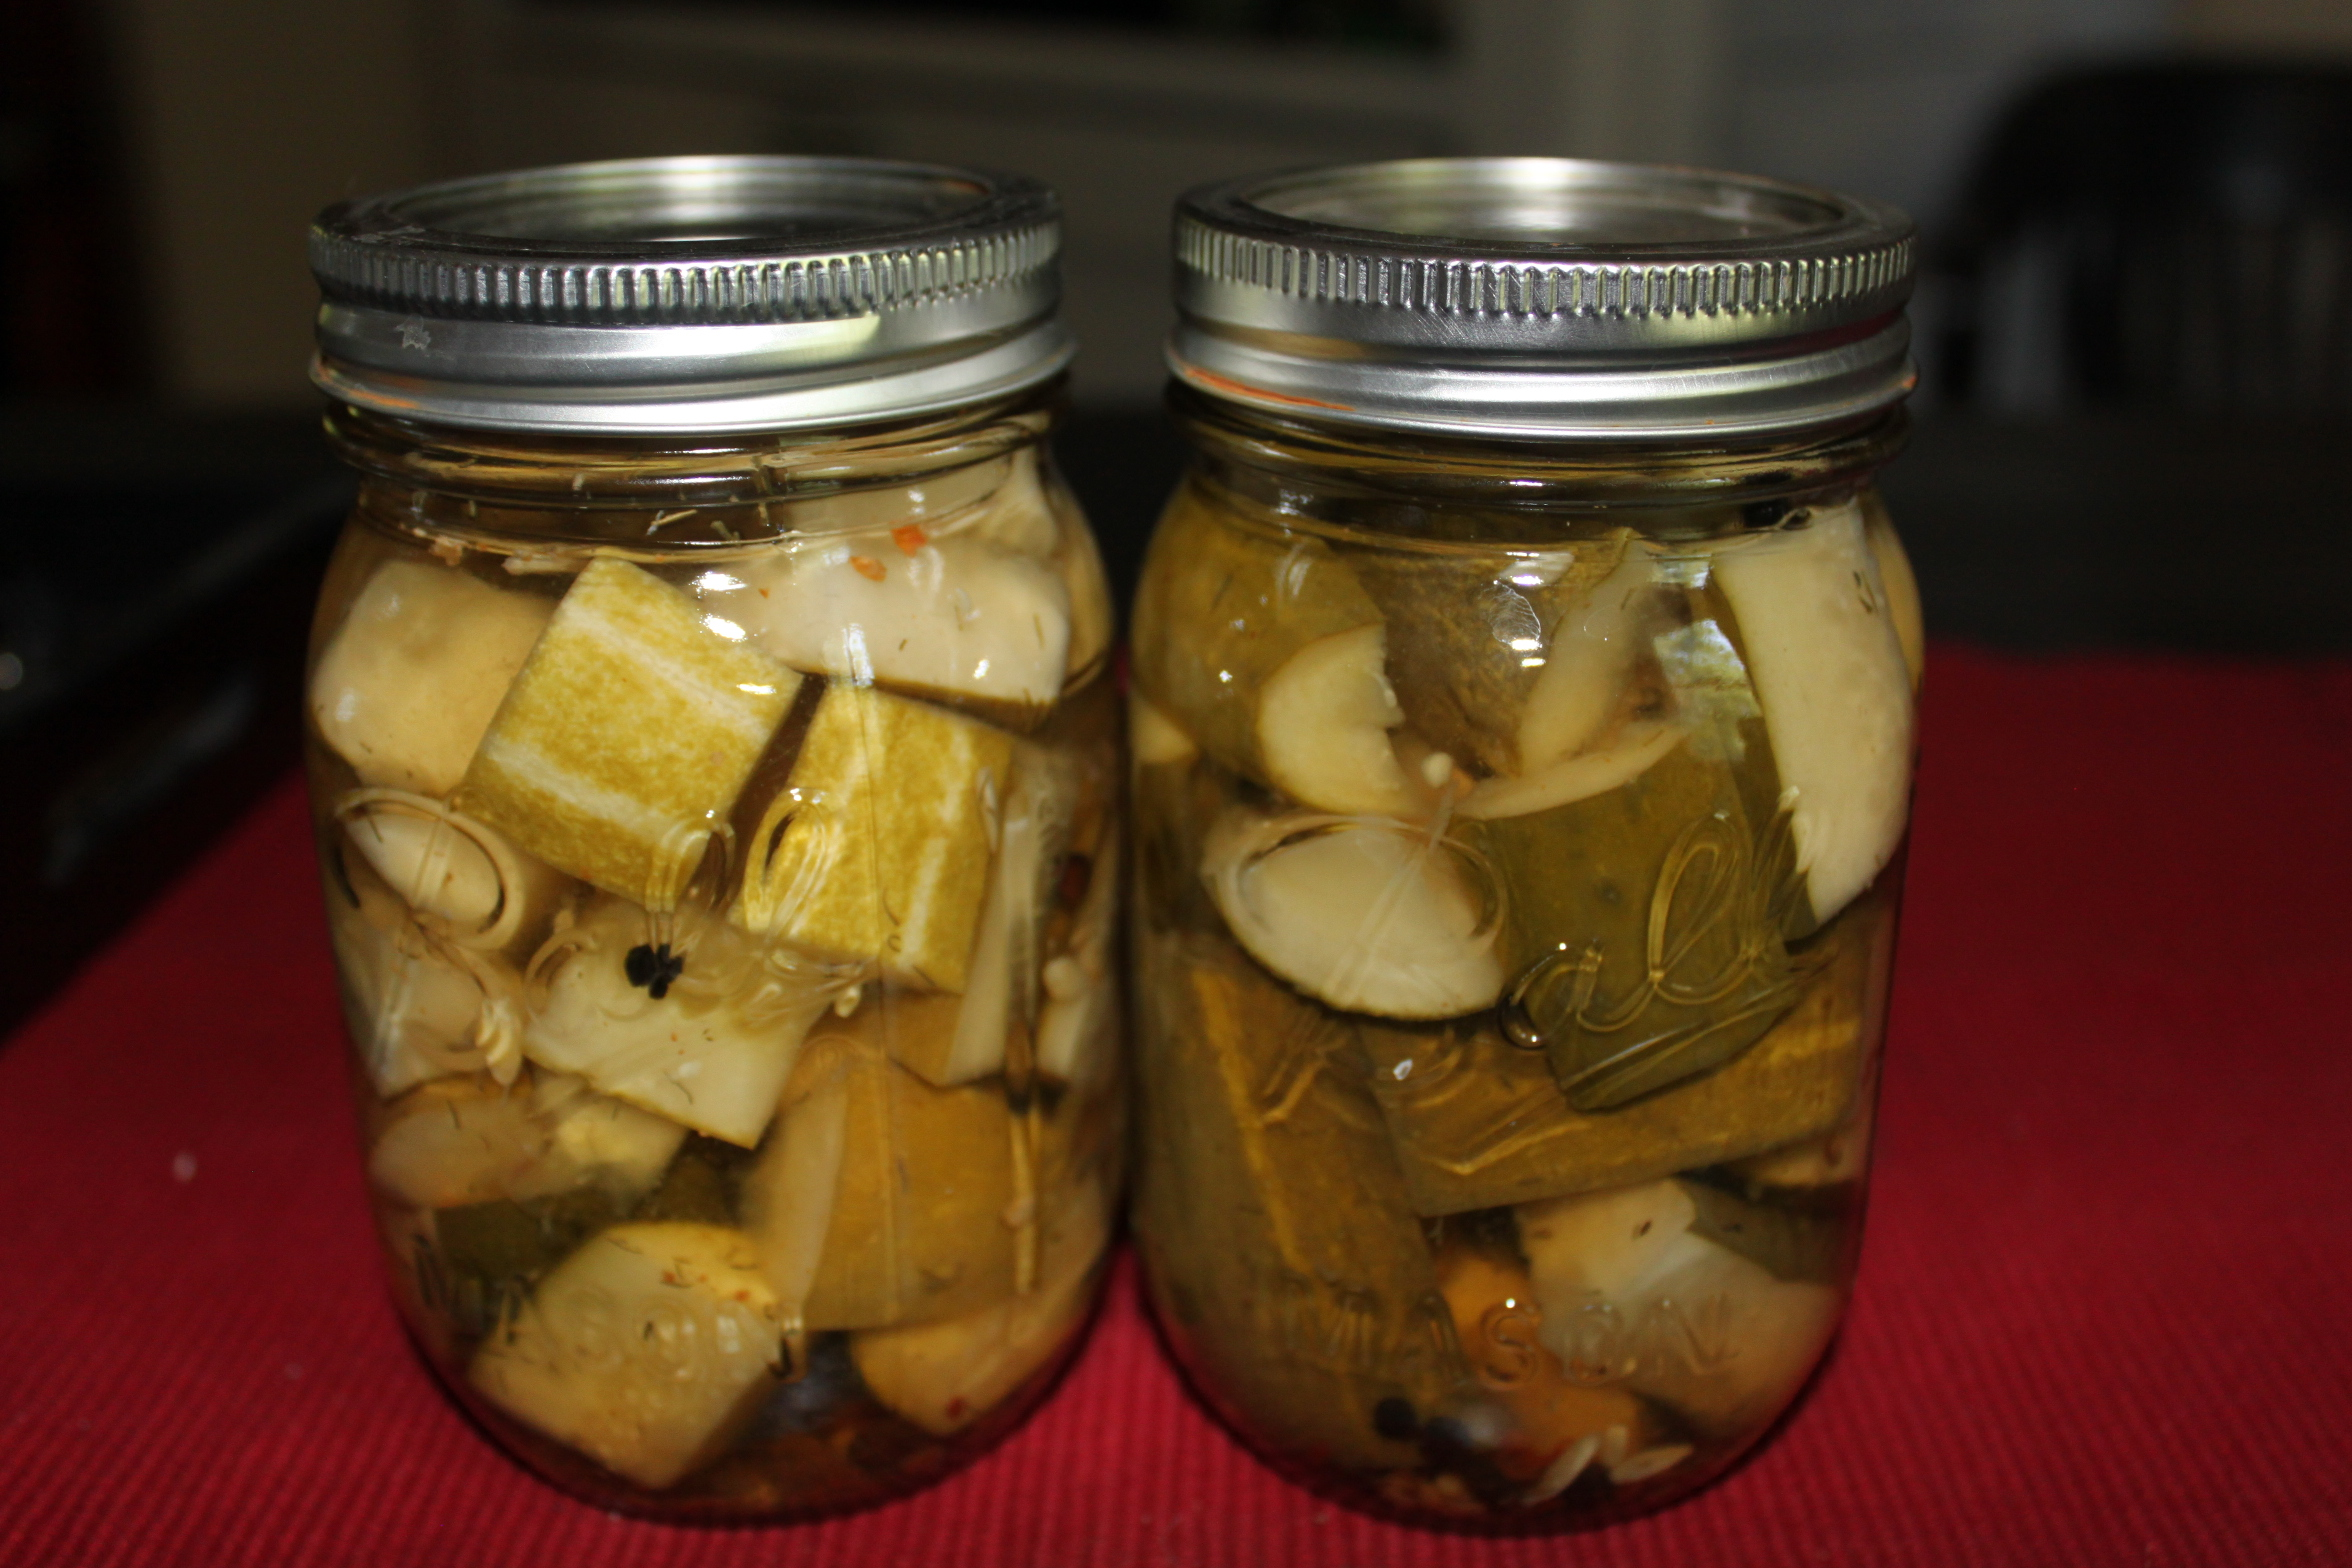 Dill Pickle Recipe: Finally, I'm Getting the Crunch!  |Canning Dill Pickles